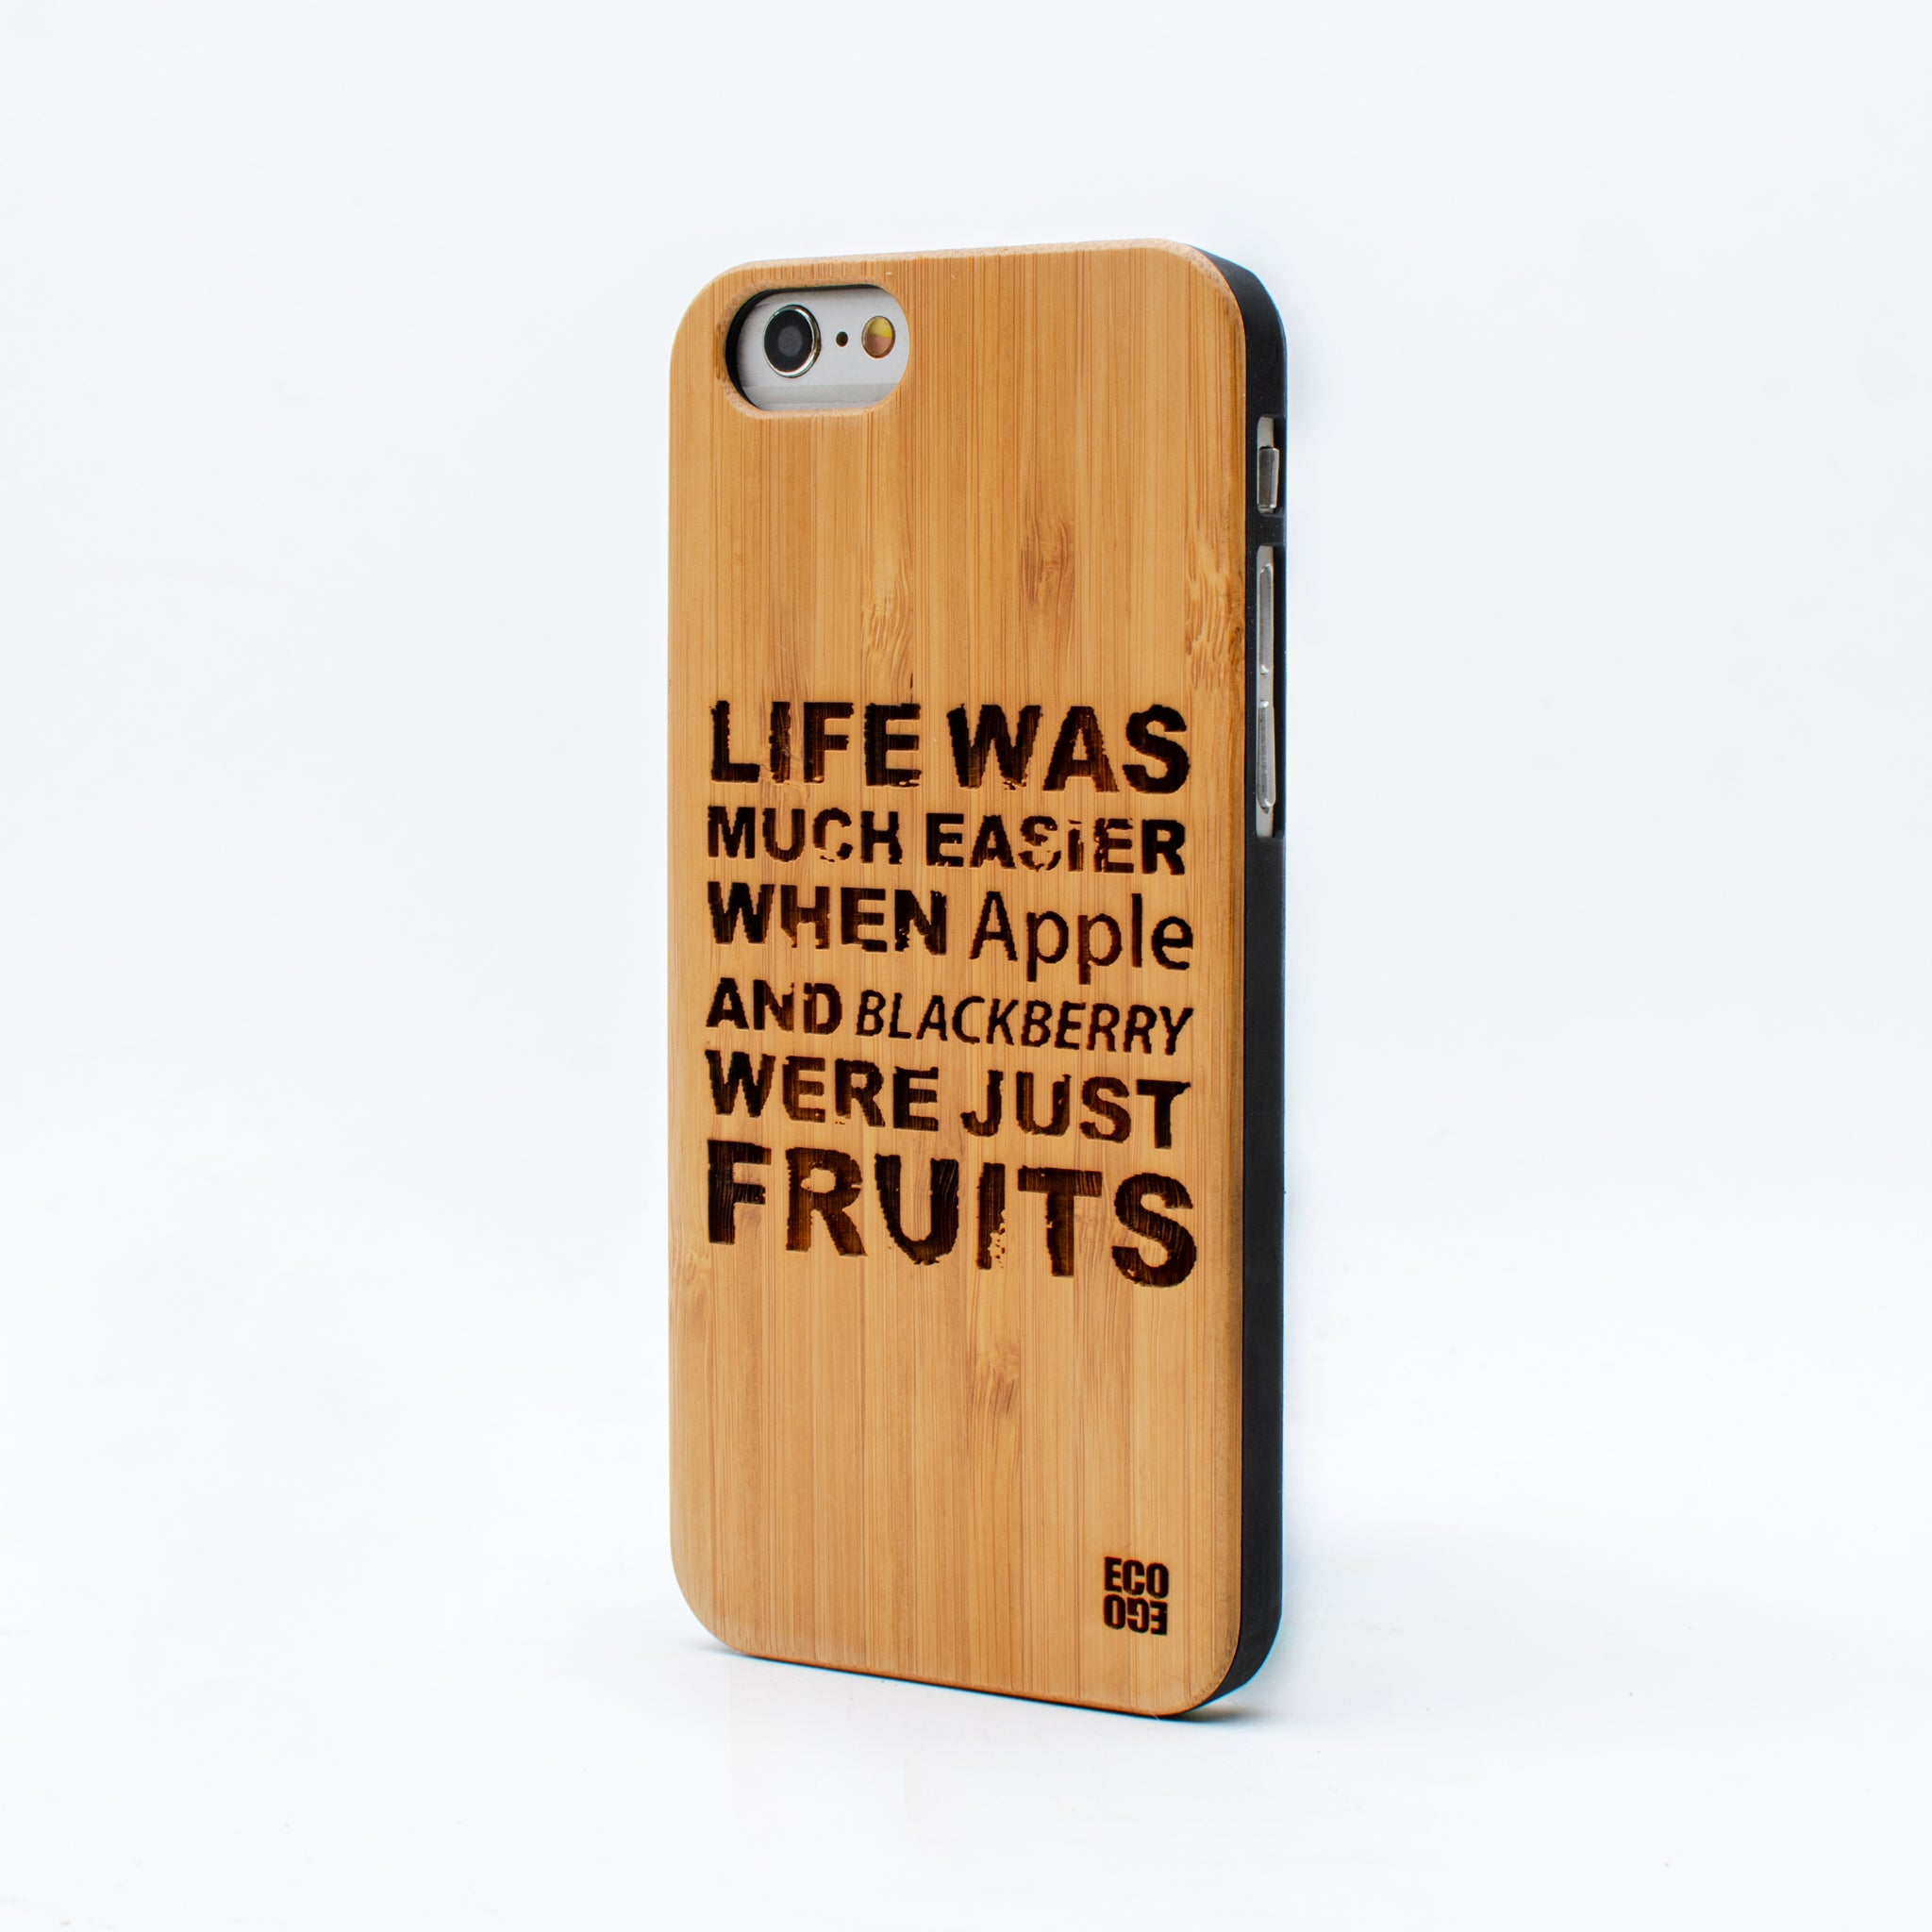 bamboo iphone 6 case life was ecoego